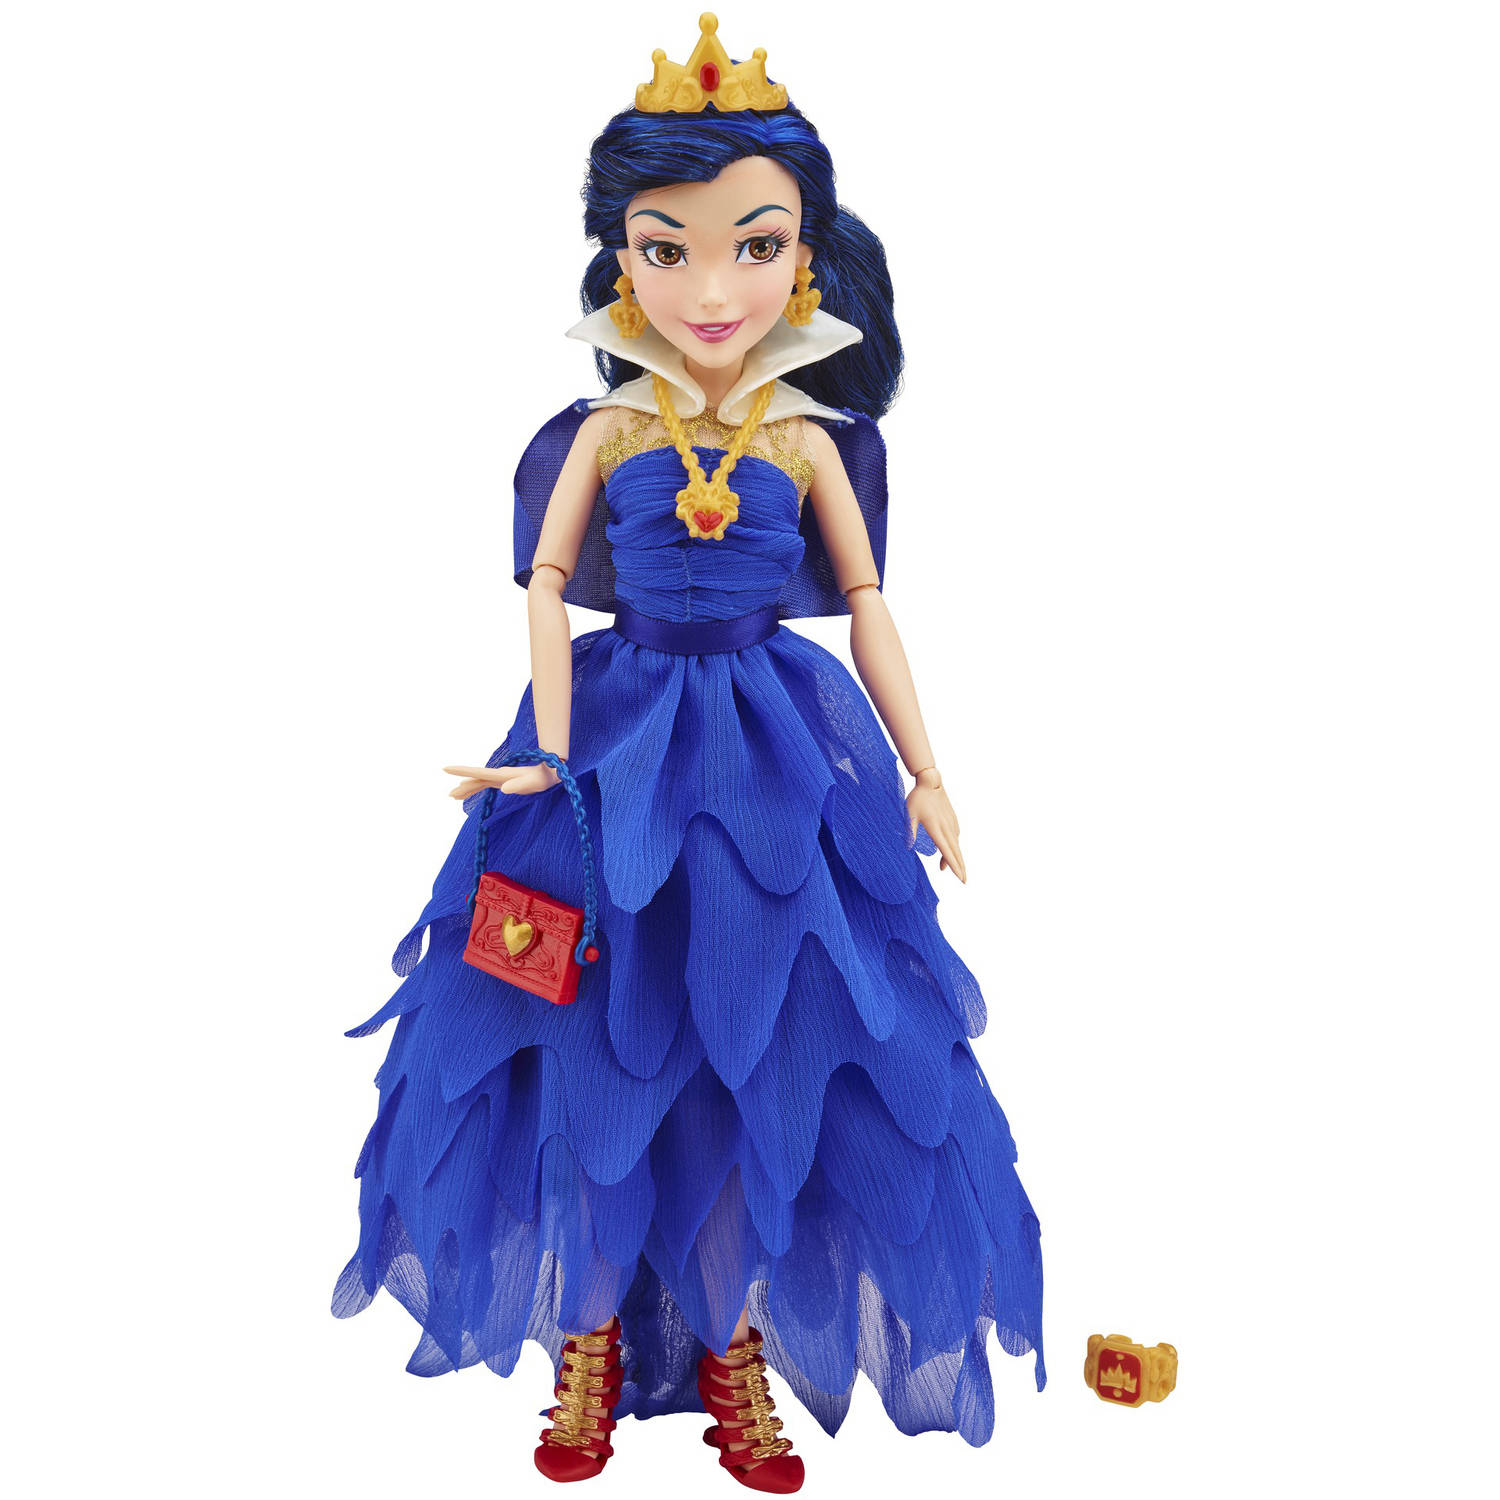 Disney Descendants Coronation Evie Isle of the Lost Doll by Hasbro